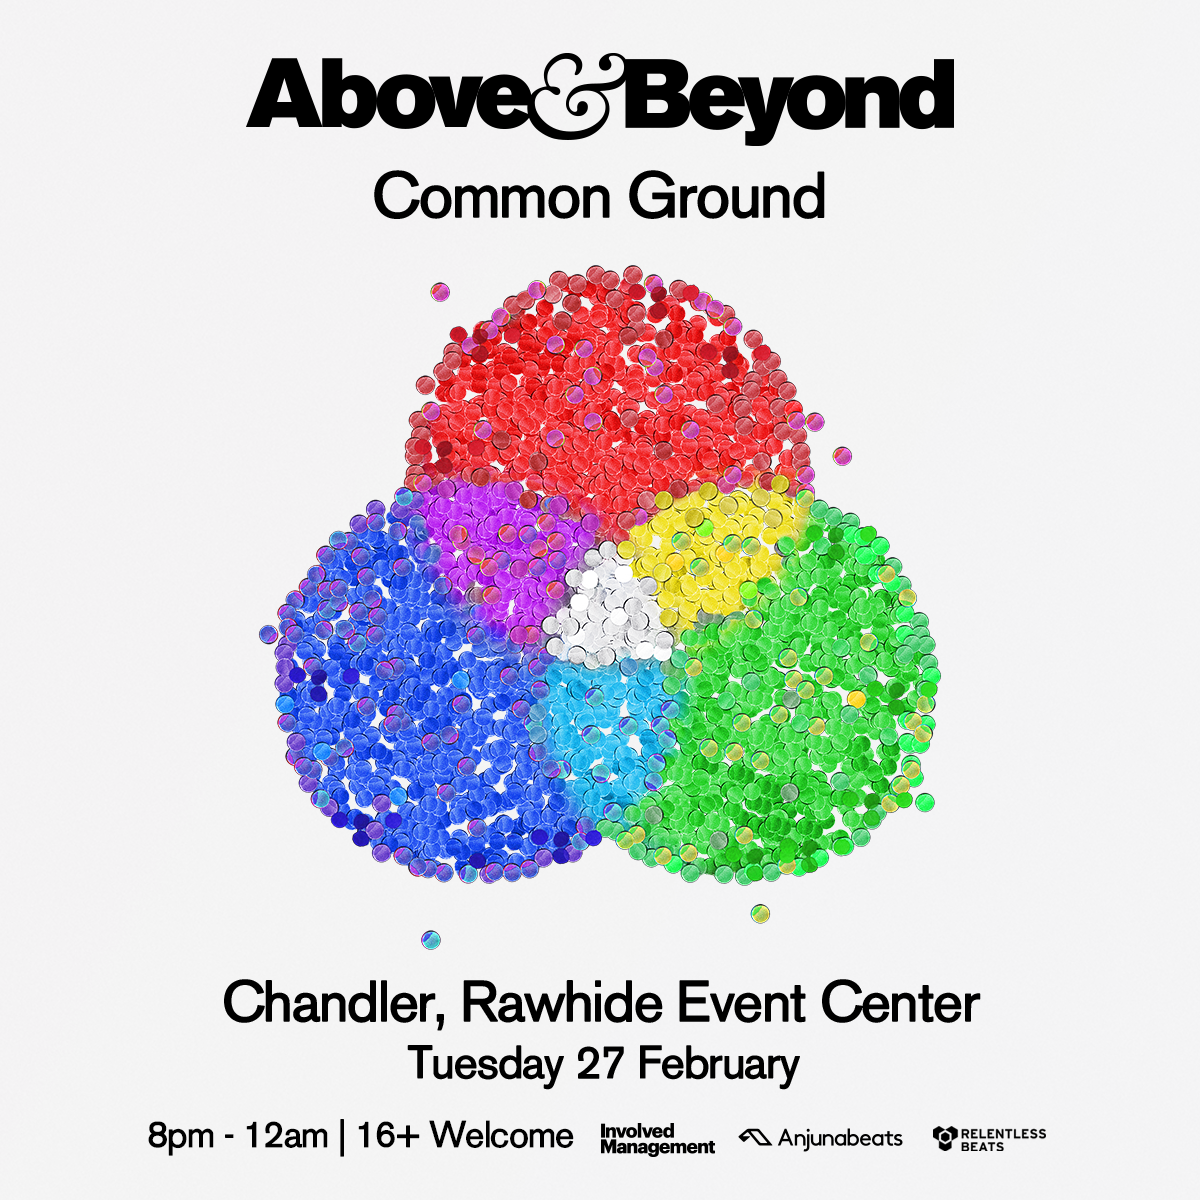 Flyer for Above & Beyond: Common Ground